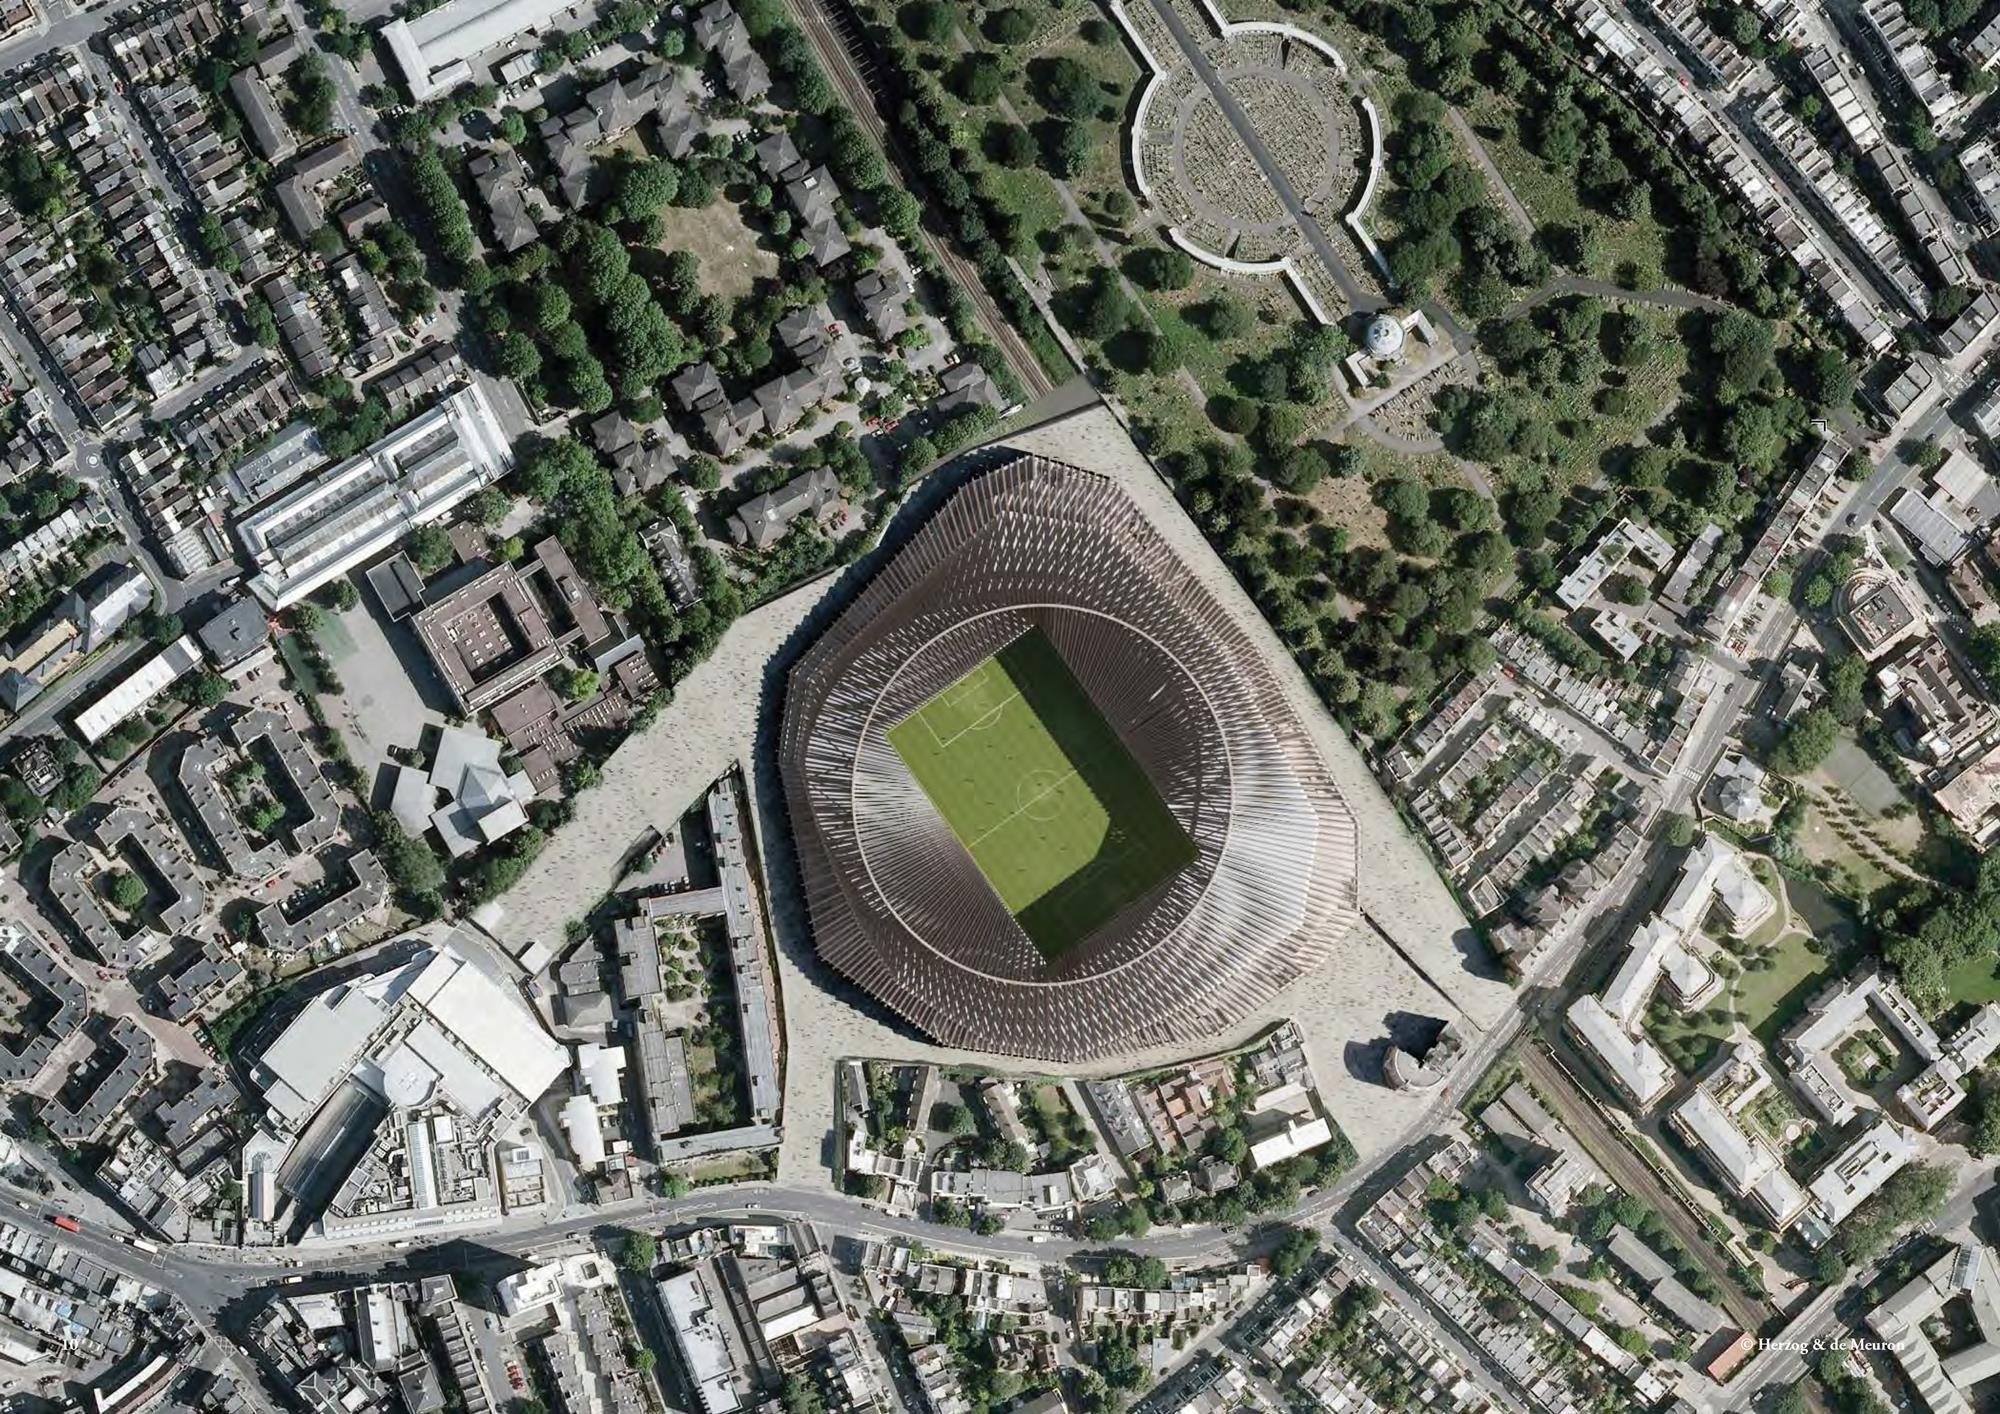 Education stadia and arenas sports and leisure healthcare residential - Khan Green Lights Herzog De Meuron S Chelsea Stadium News Building Design